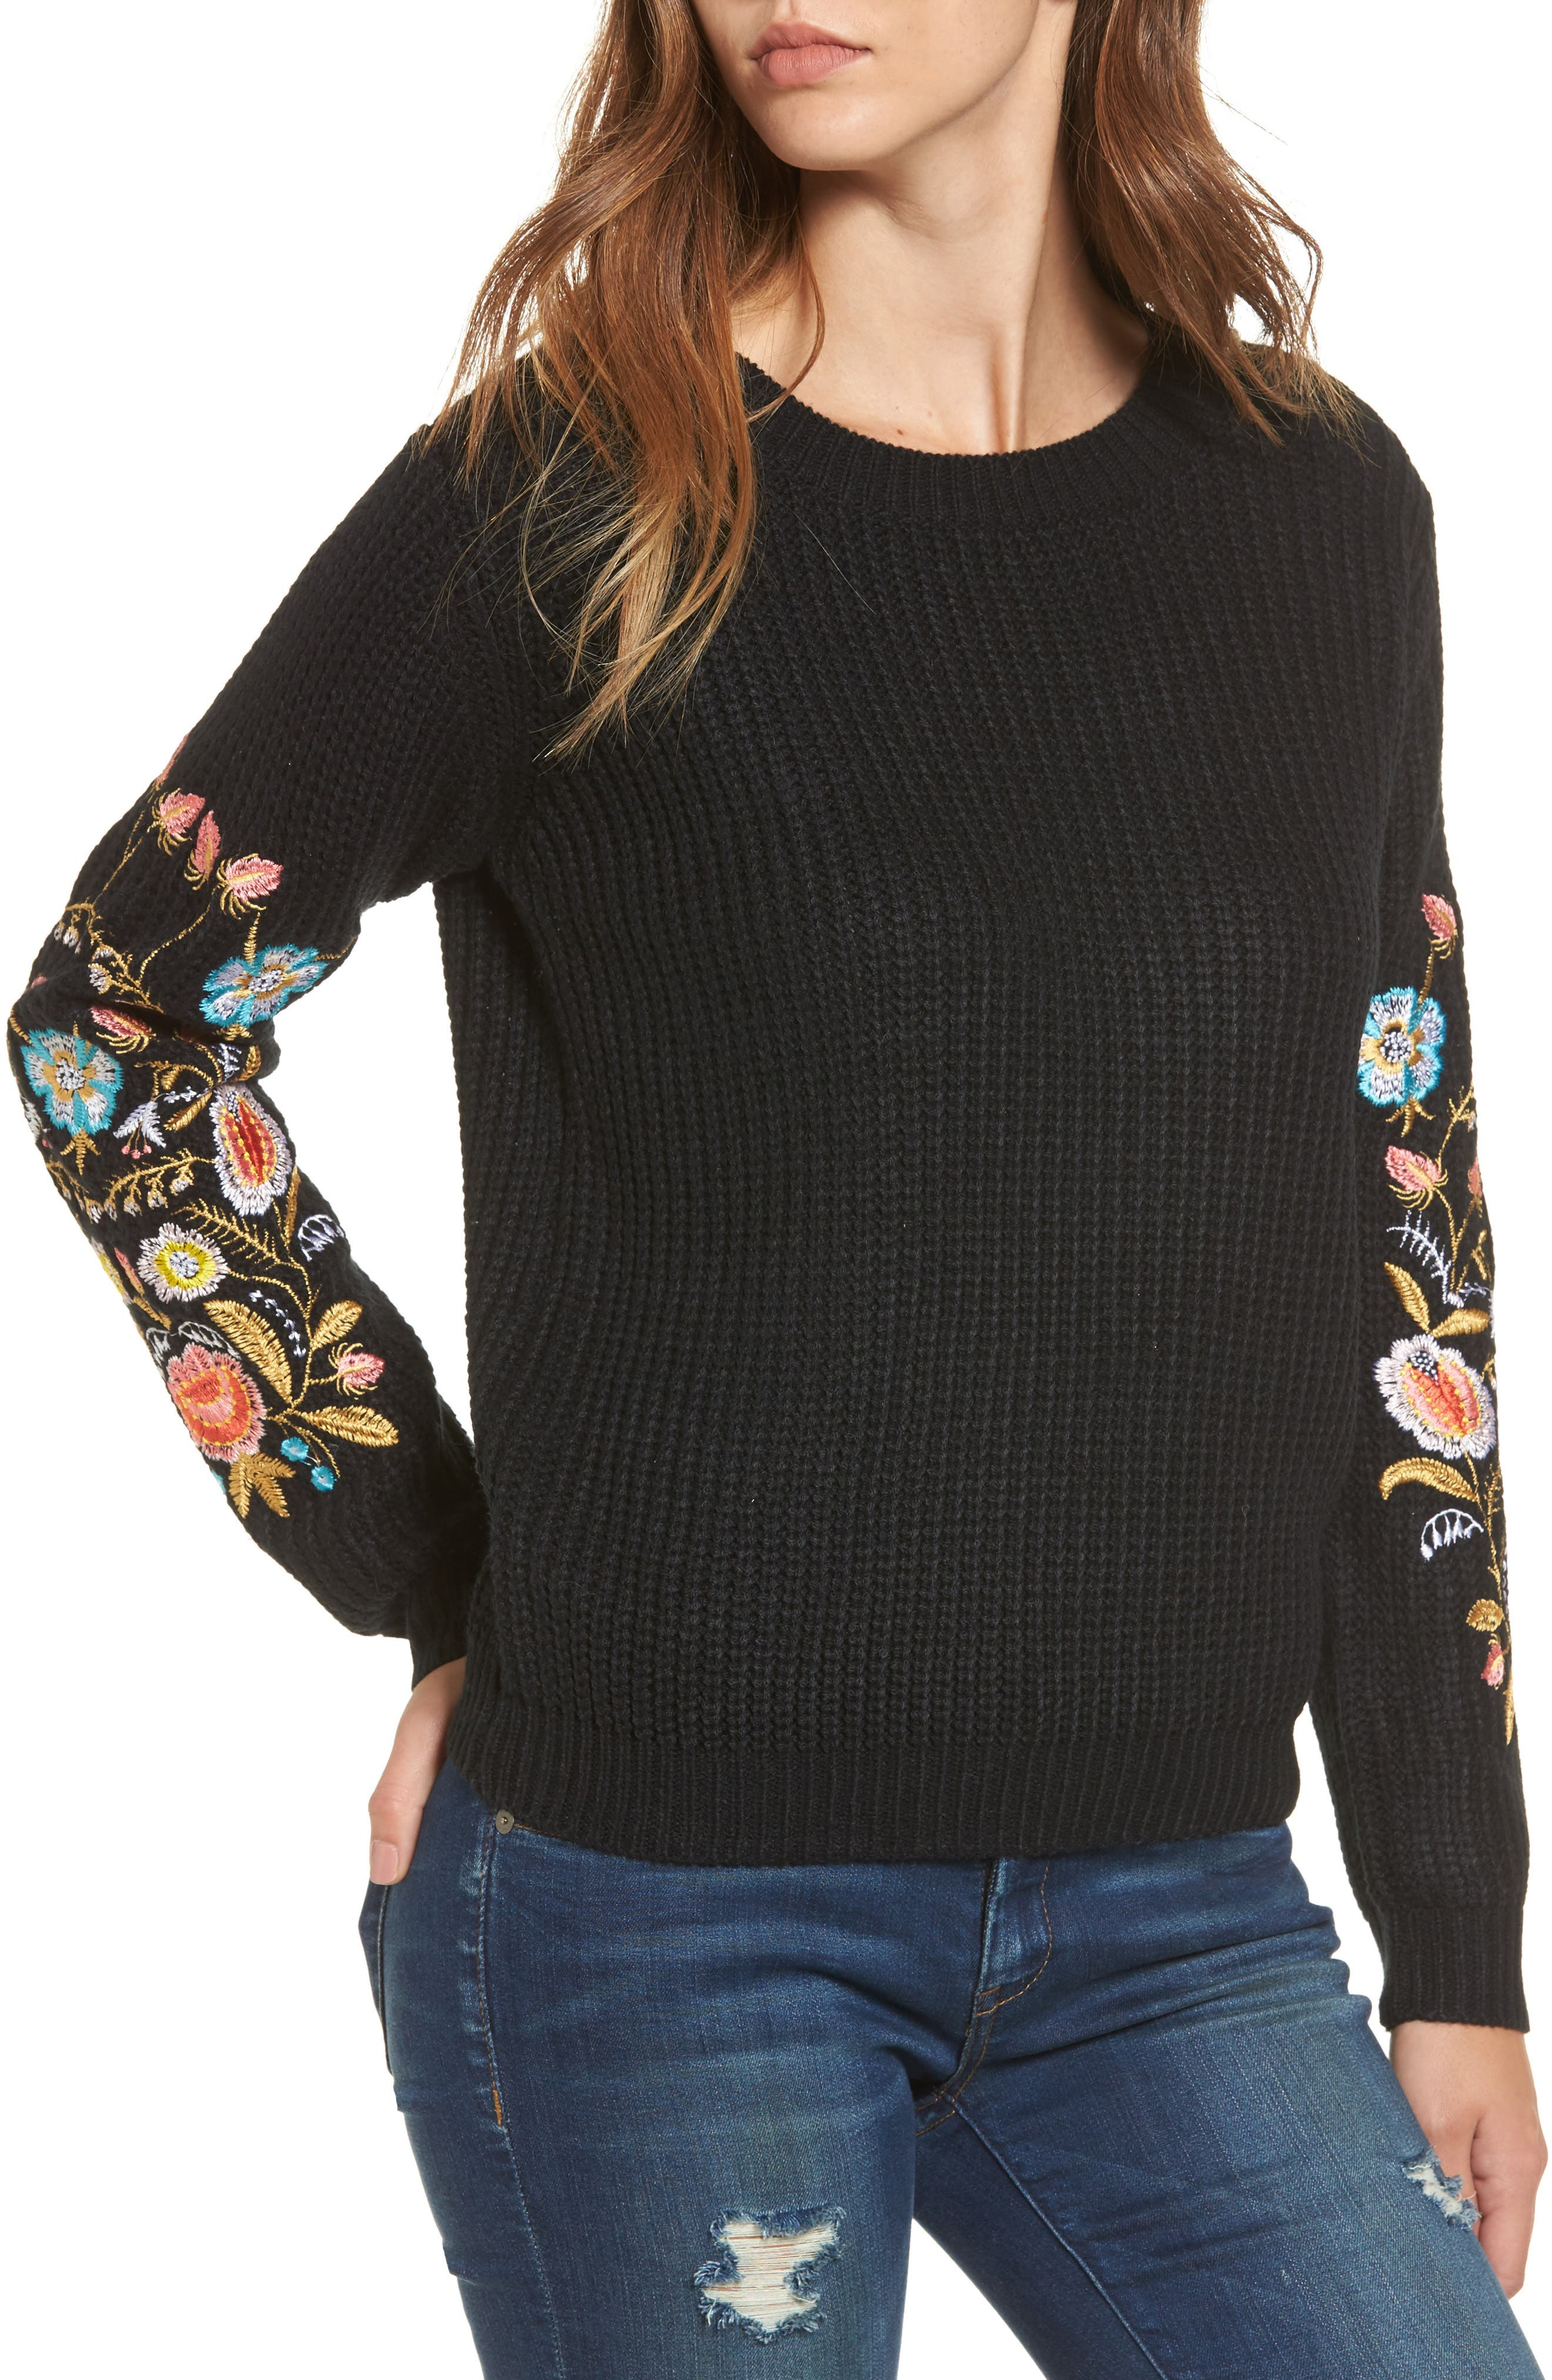 Main Image - Woven Heart Embroidered Waffle Stitch Sweater